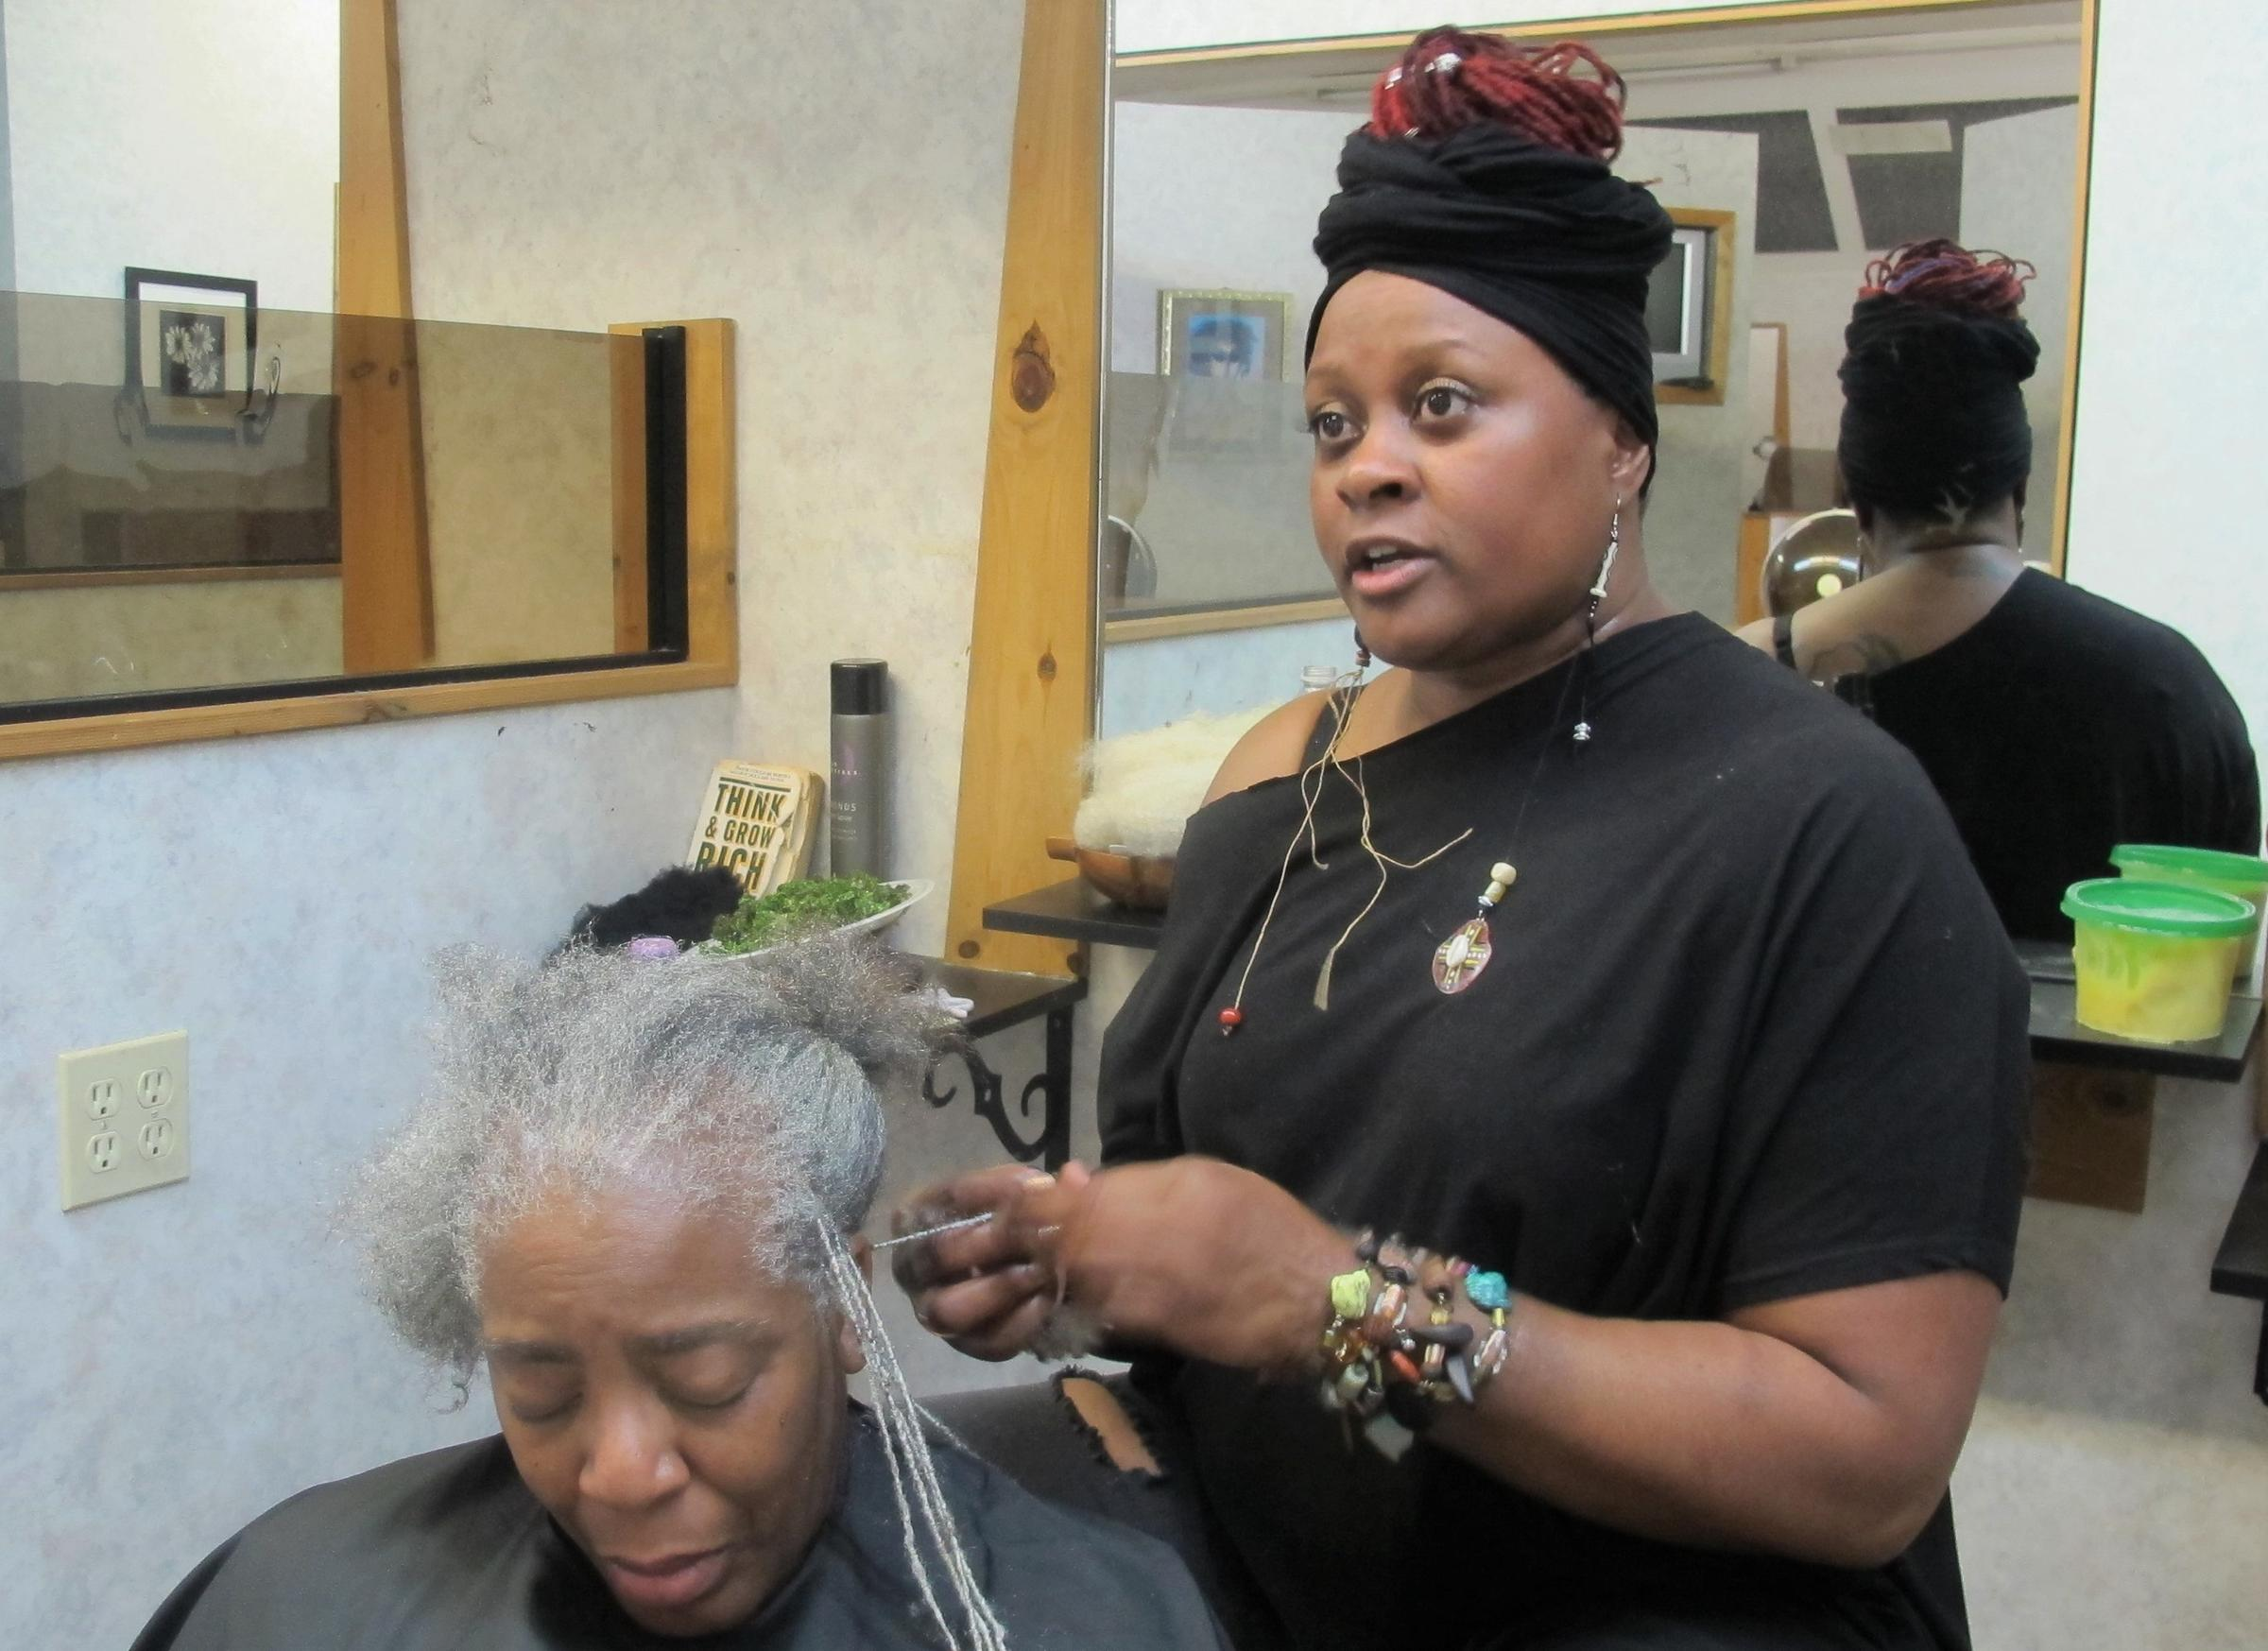 bessay hair salon akron ohio Famous hair is a full-service hair salon in akron, oh that offers quality men's and women's haircuts, hair styling, and color services at an affordable price.